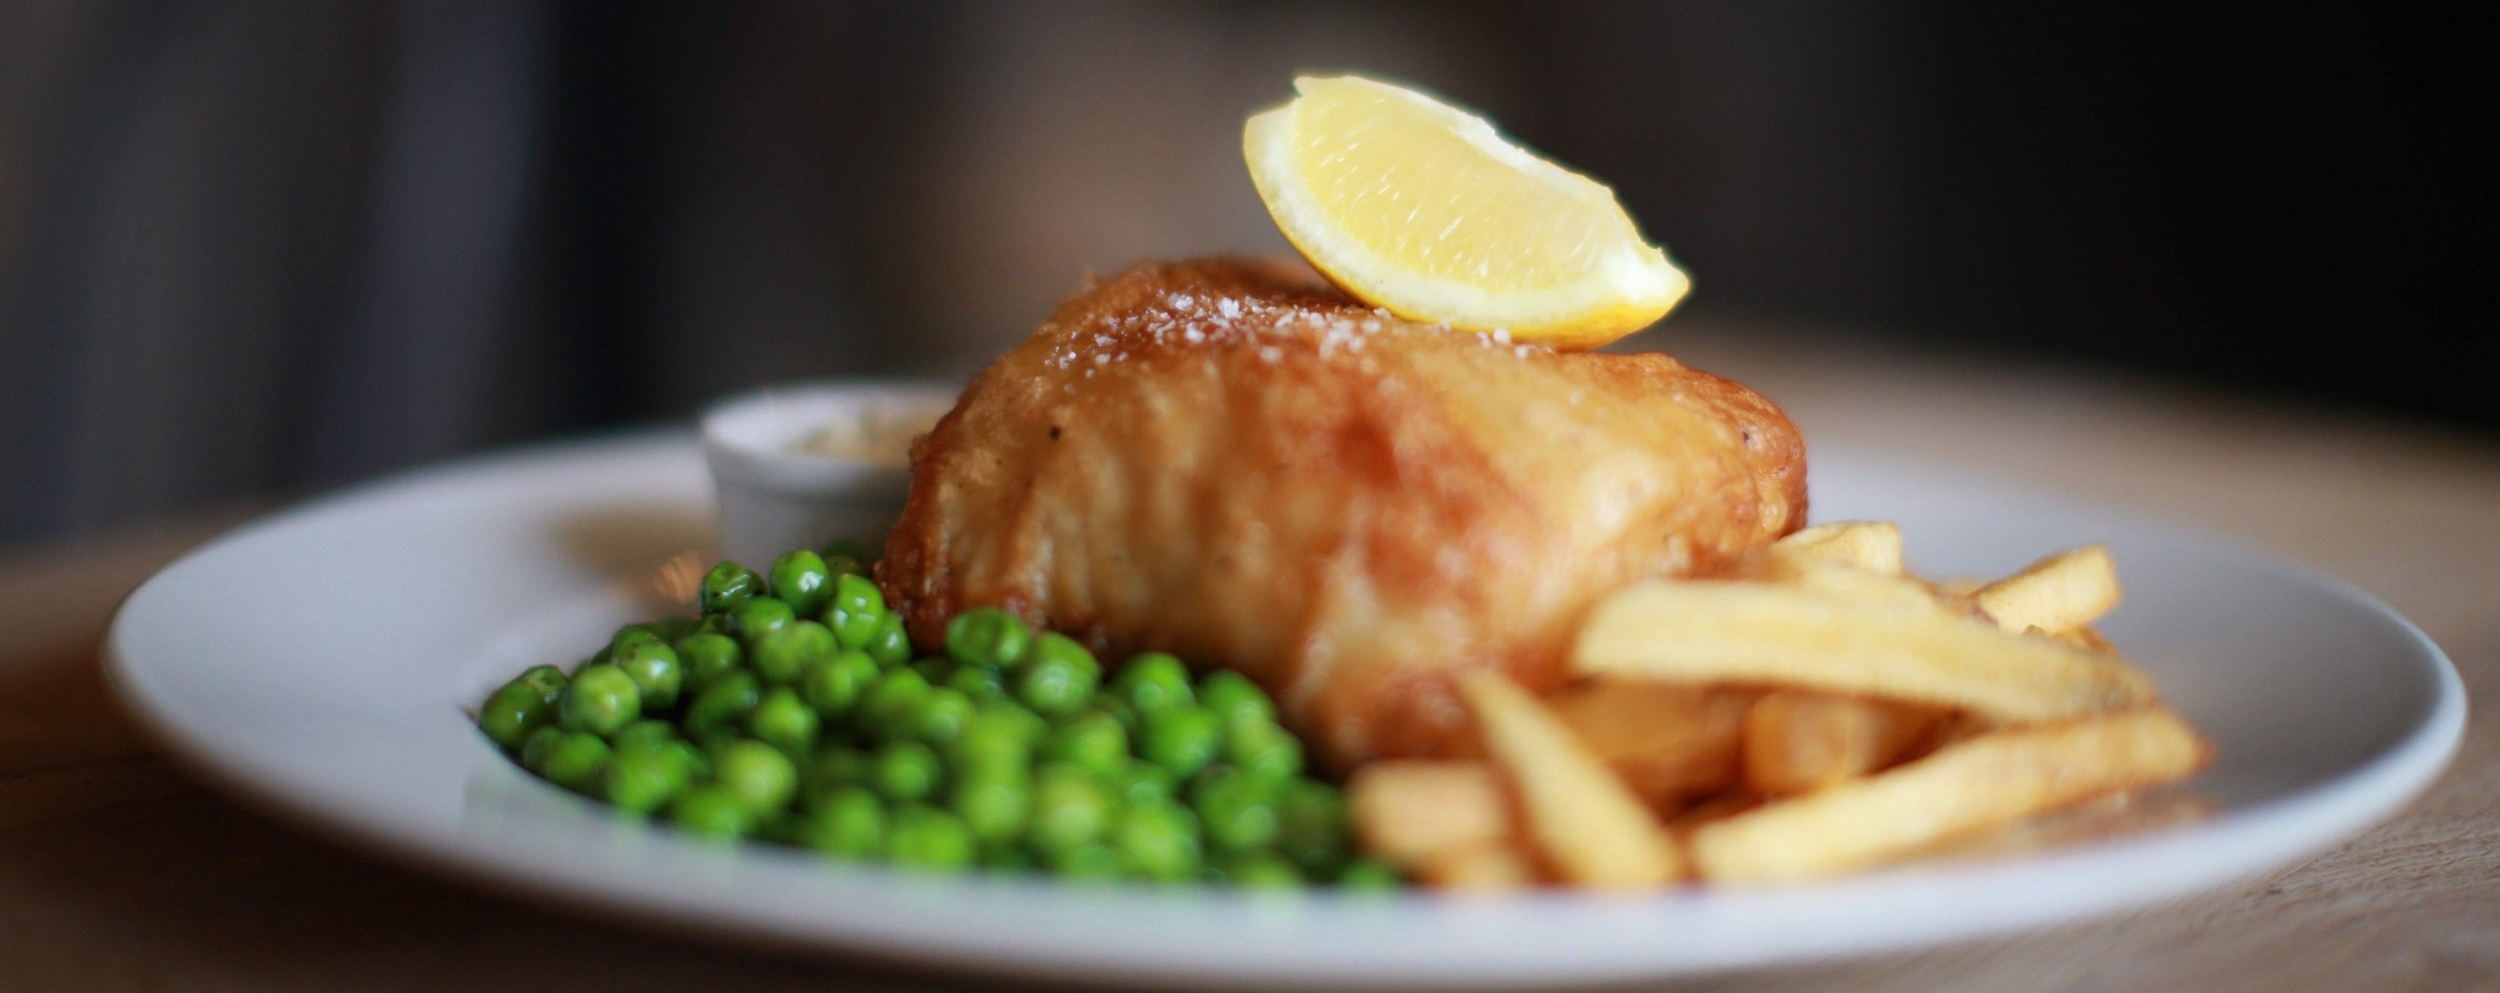 Hollist fish and chips smaller file.jpg